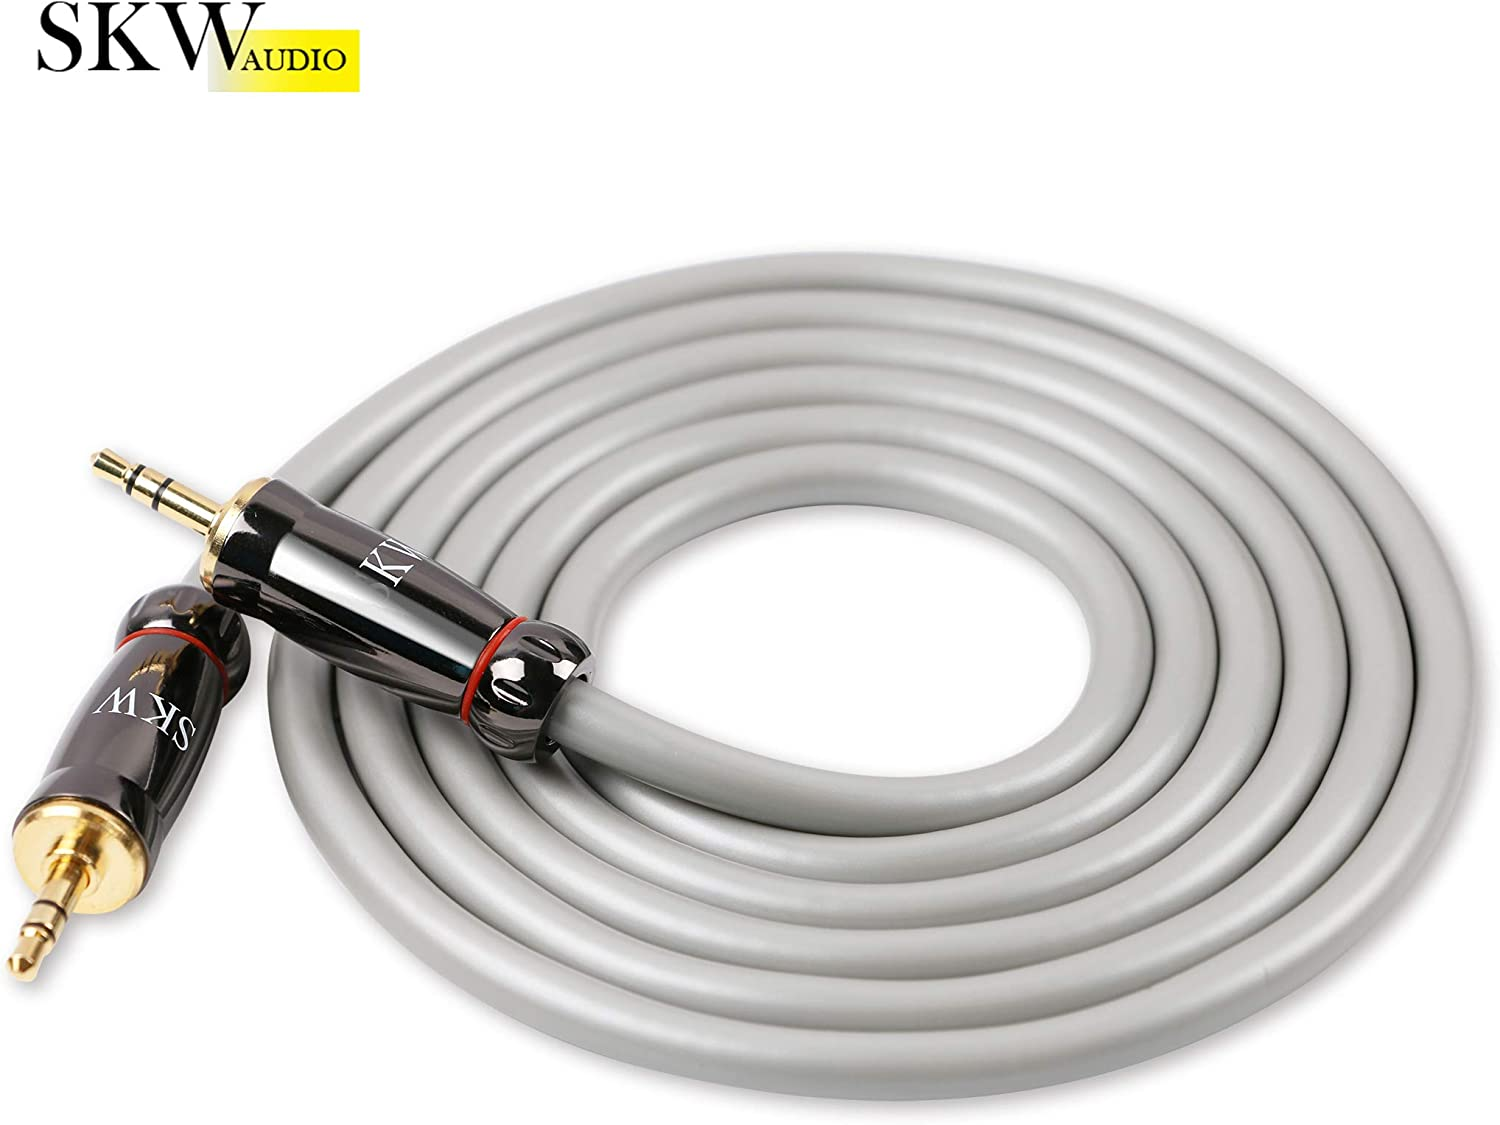 3.2ft//1M,Nylon SKW Audiophiles AUX Cable 3.5mm Male to Male with OD 6.8mm Stereo Audio Cable for Subwoofer,Home Theater and More